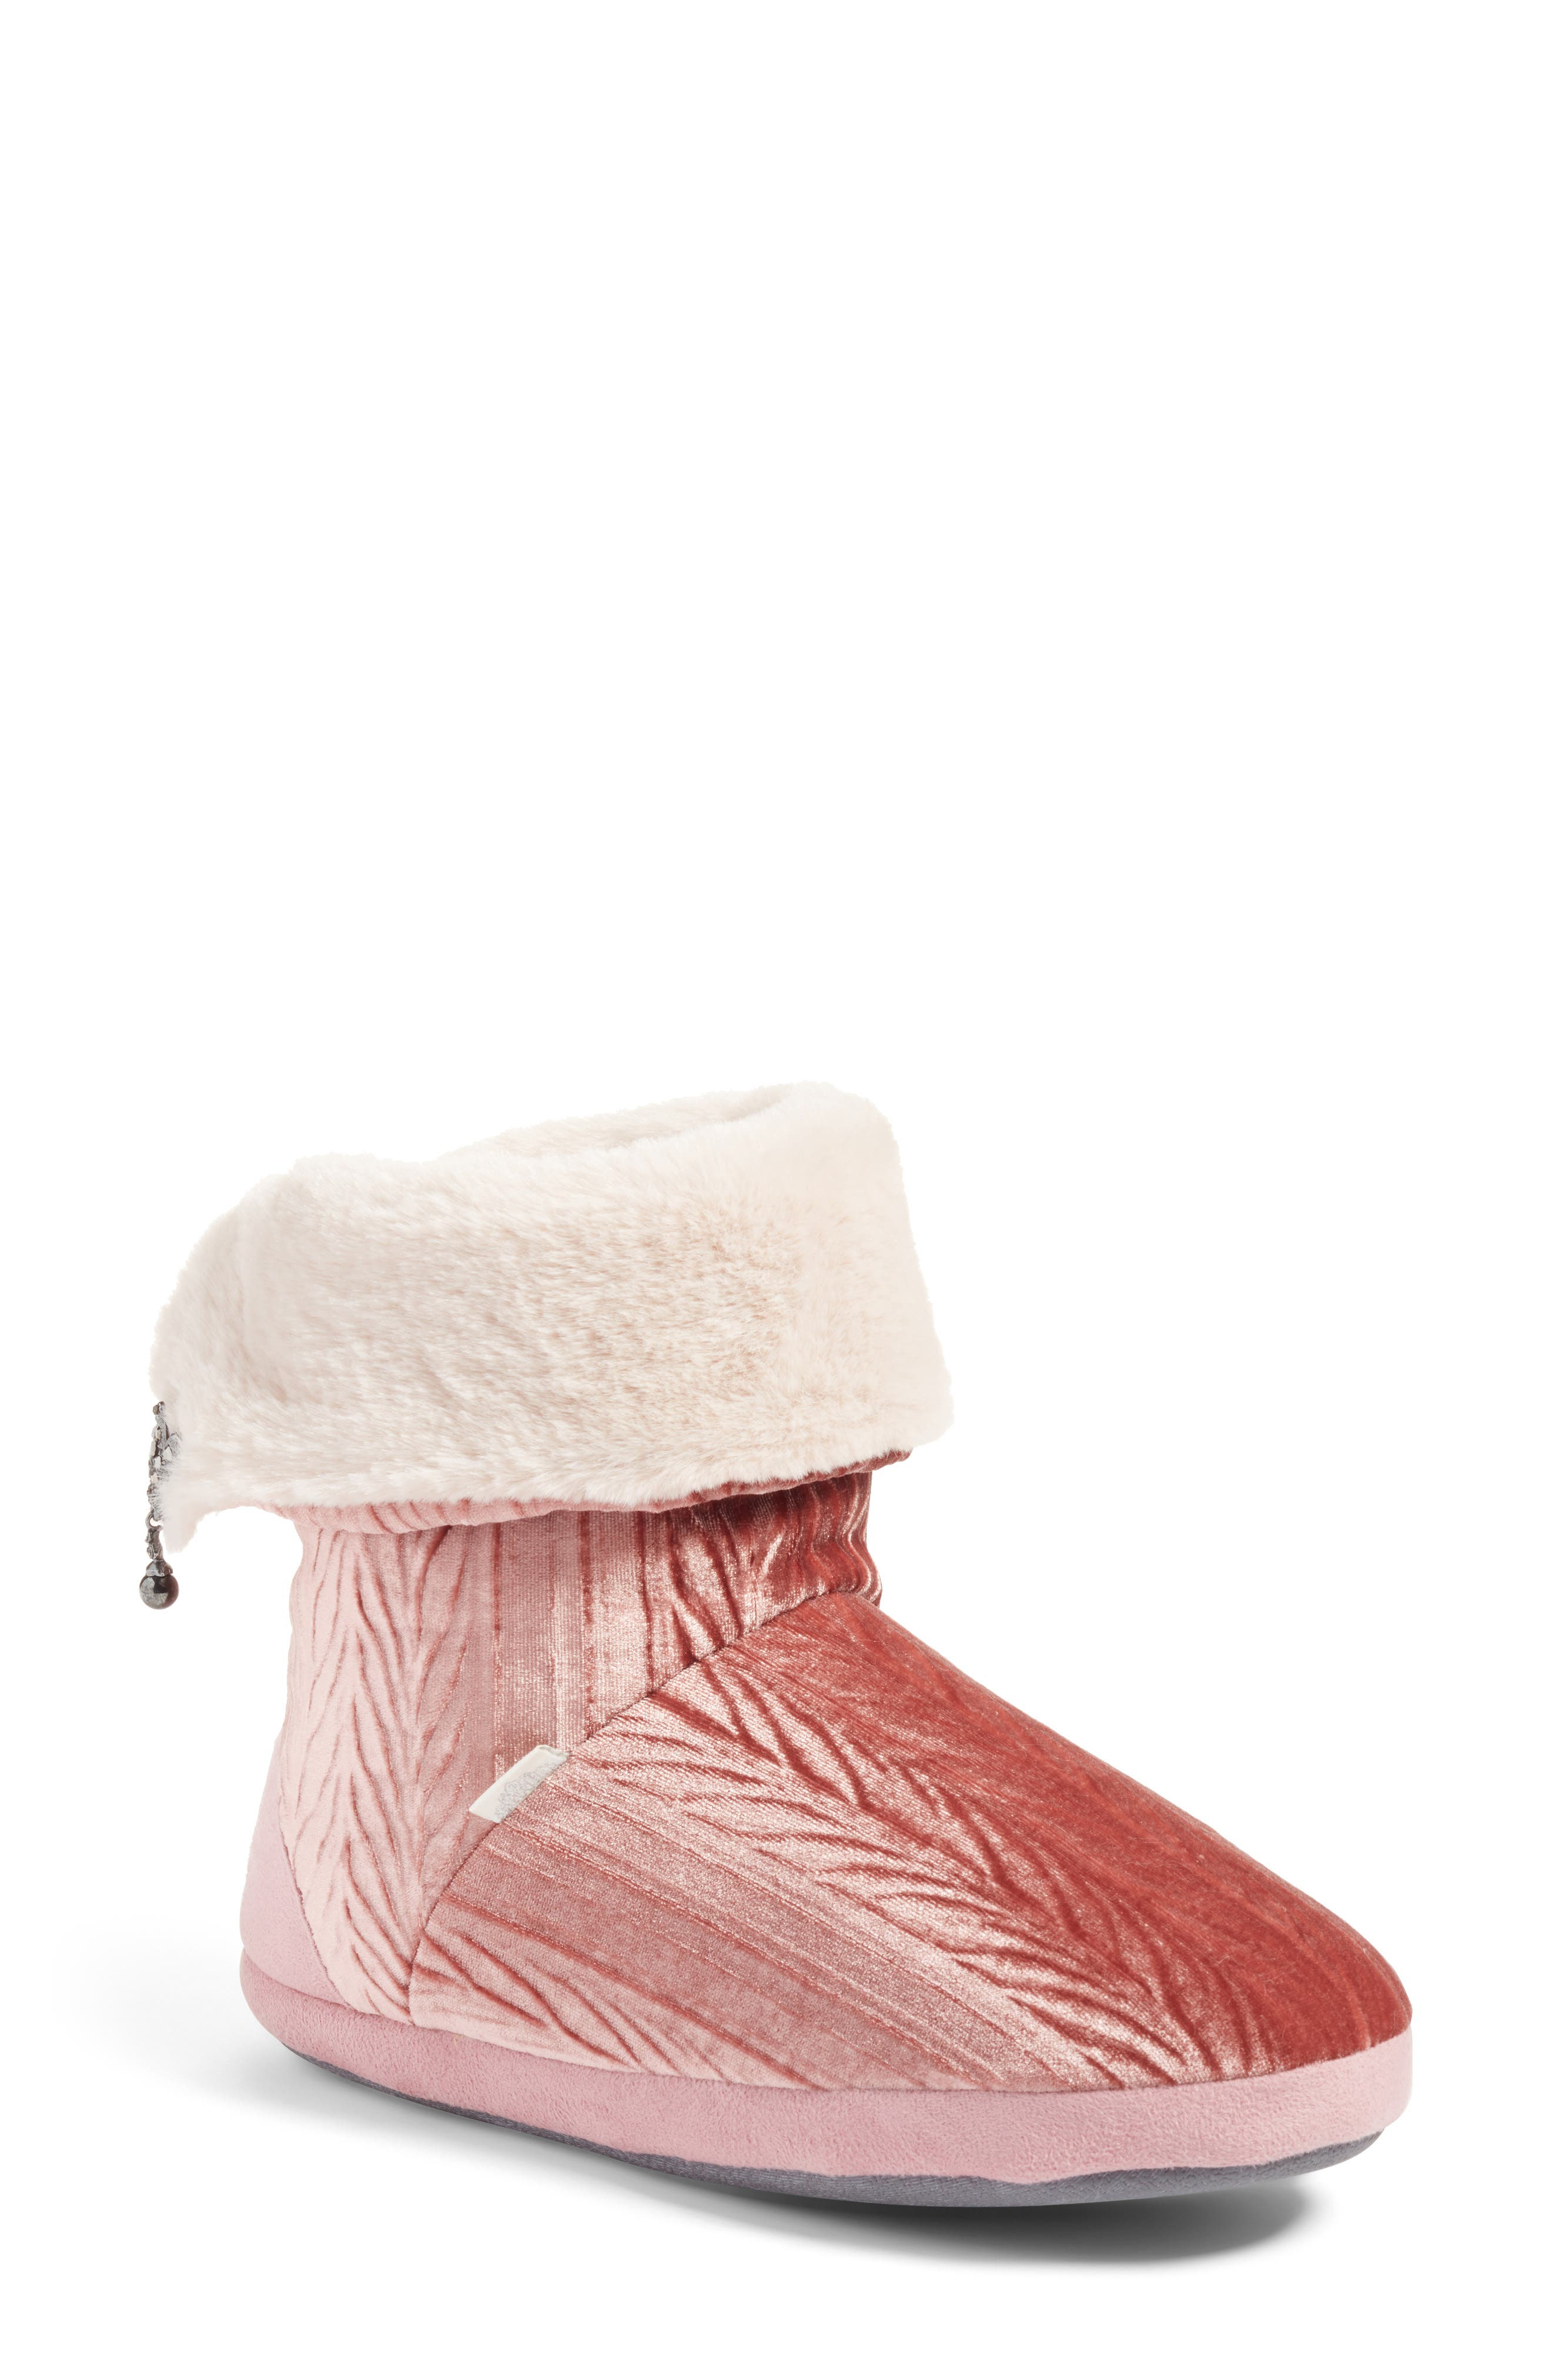 Velvet Bootie Slipper,                         Main,                         color, Pink